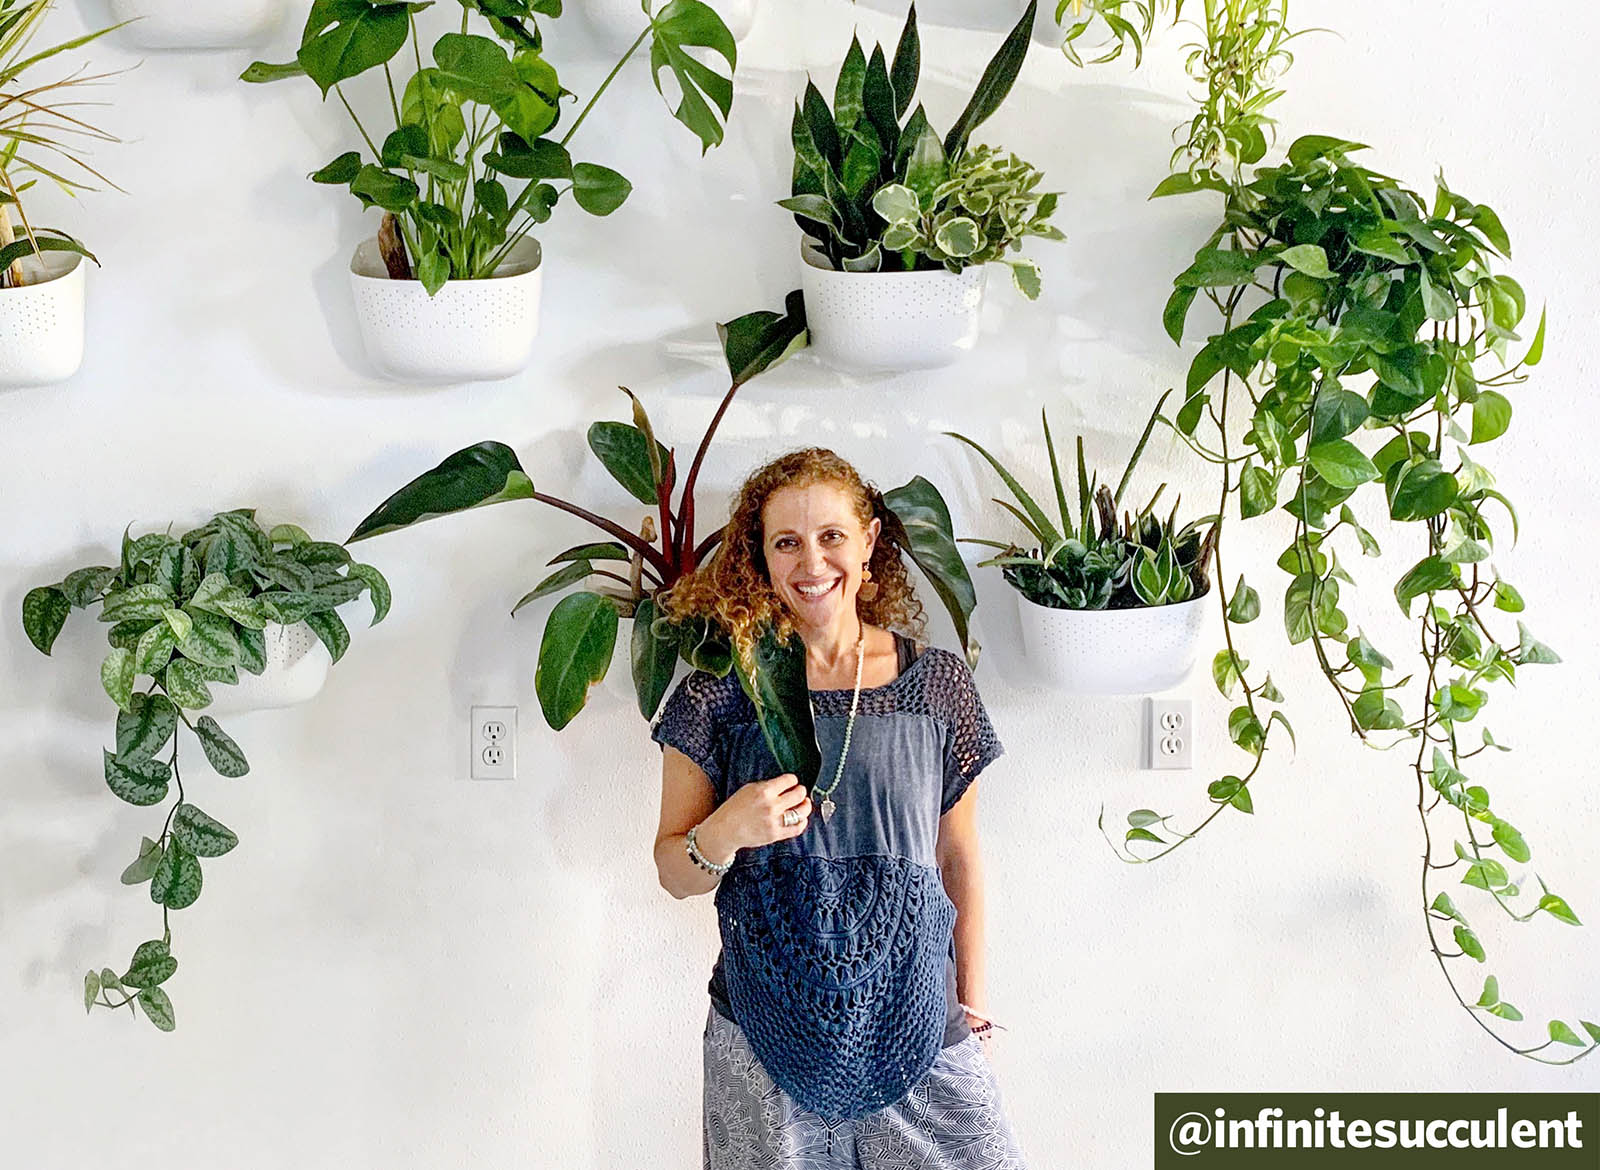 Q&A: Connecting With Nature Through Plants with @infinitesucculent